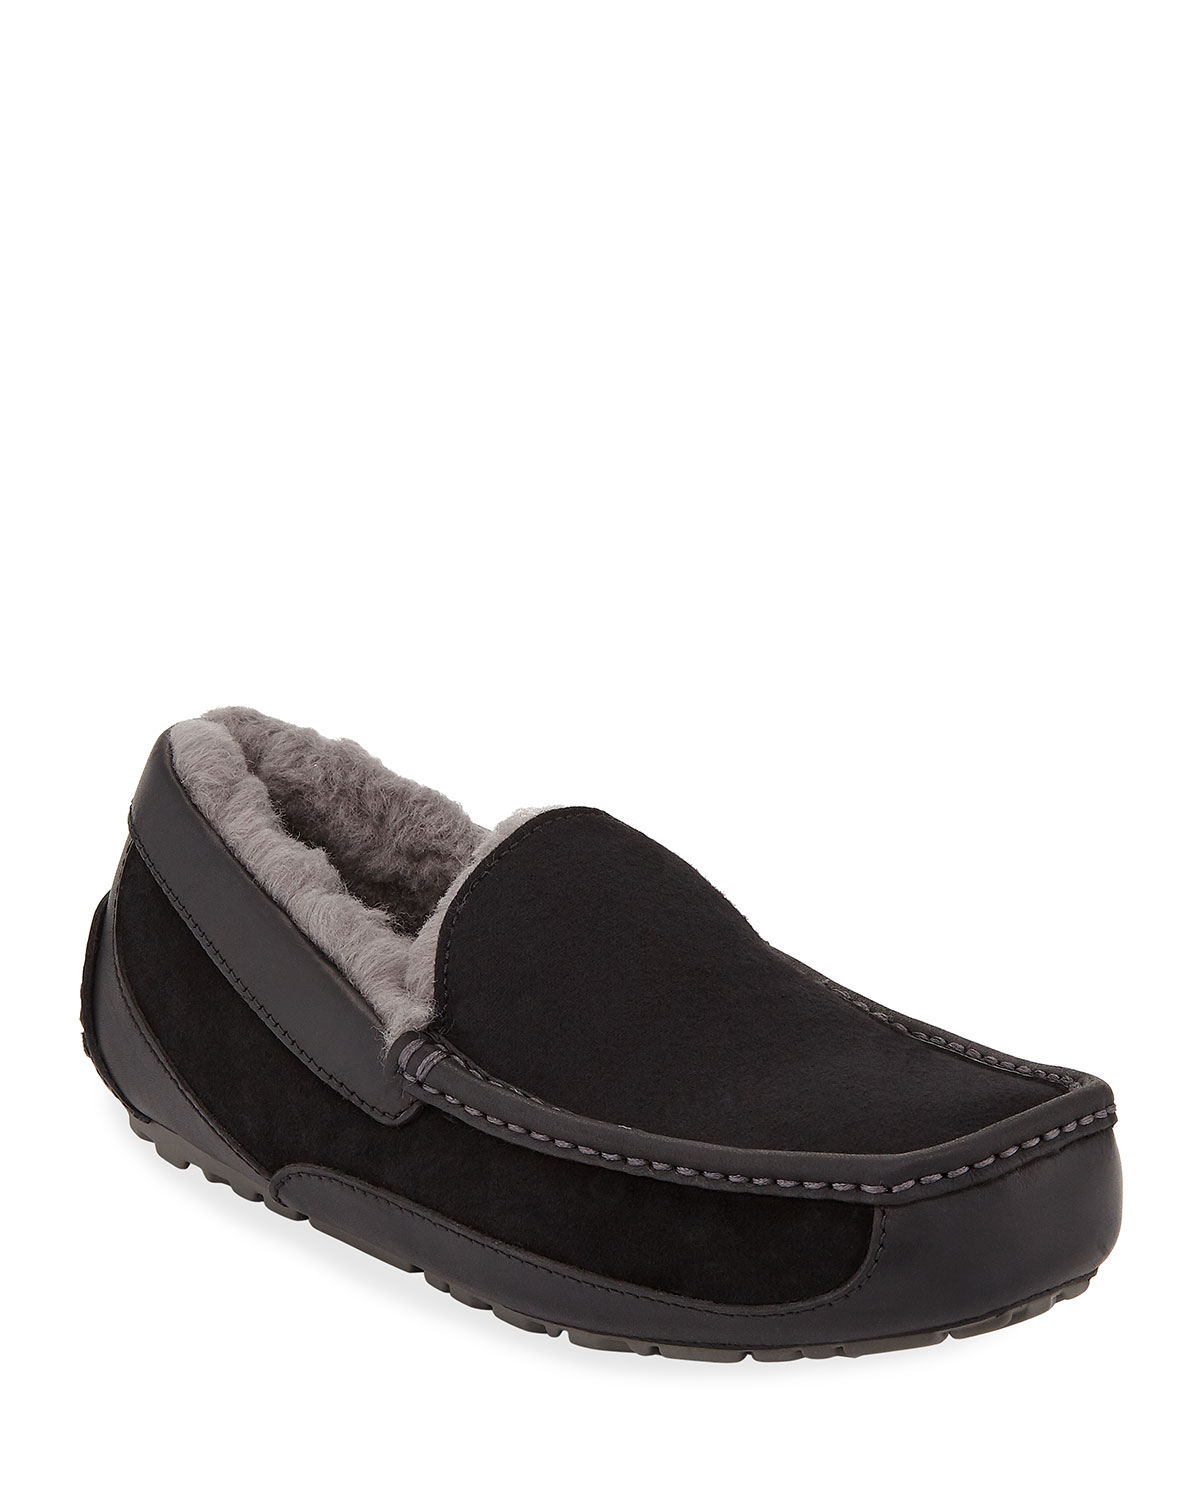 Men's Ascot Leather-Trim Slippers